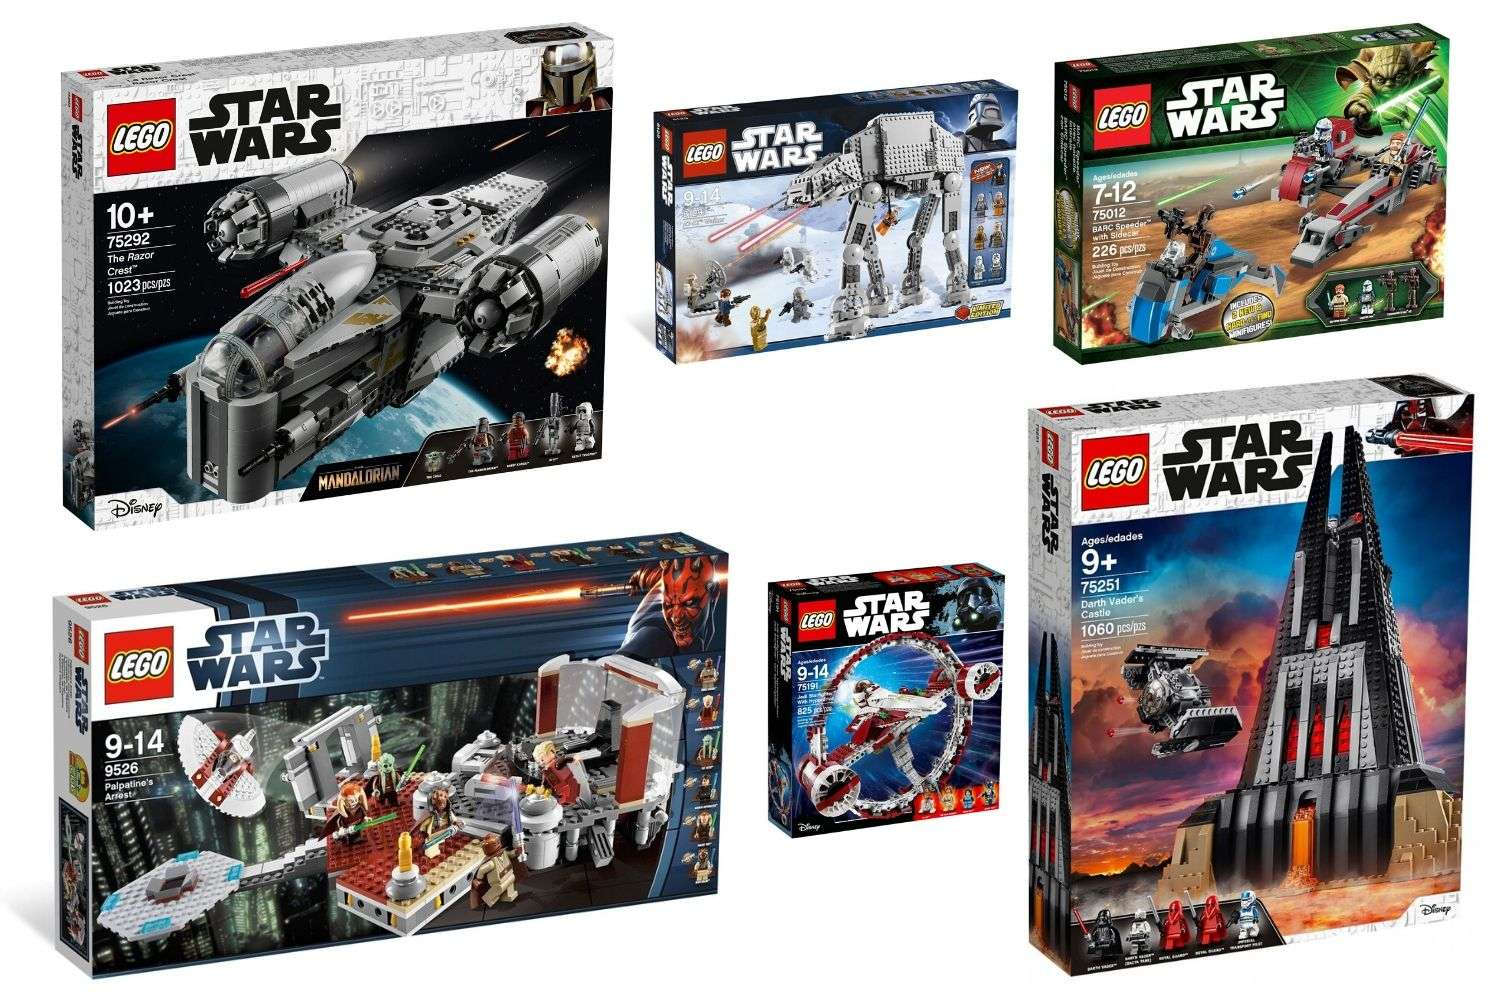 Top 10 LEGO Star Wars store exclusives